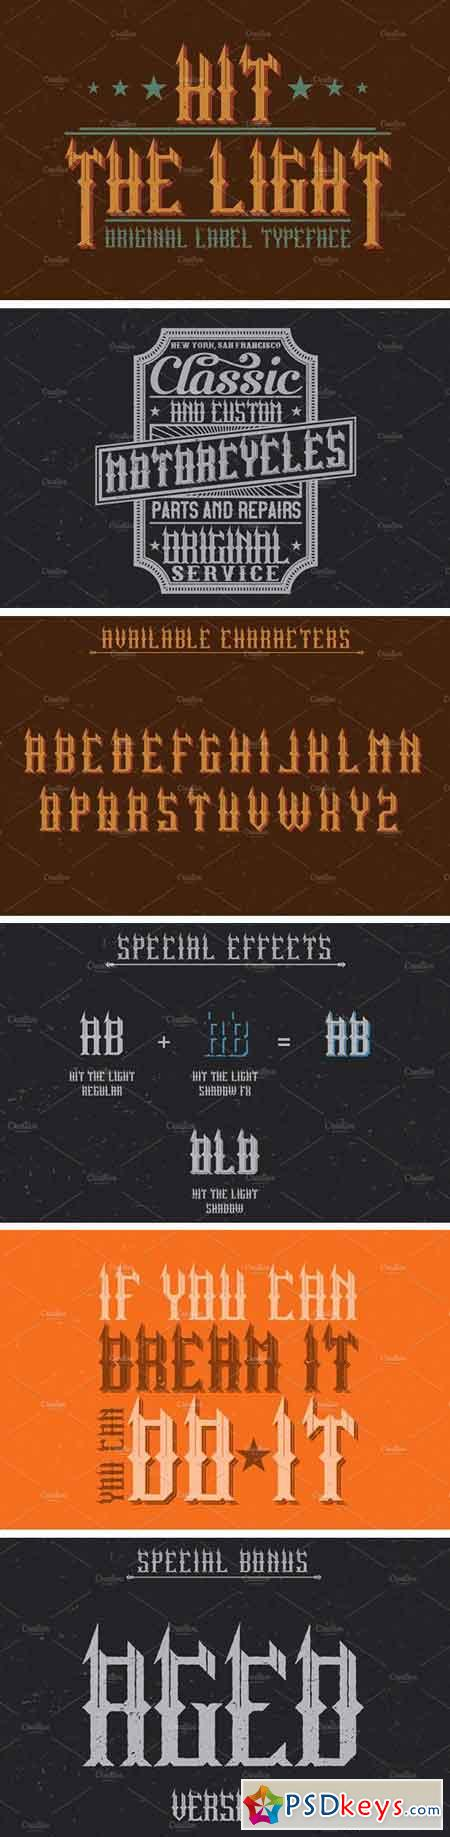 Hit The Light Vintage Label Typeface 1556424